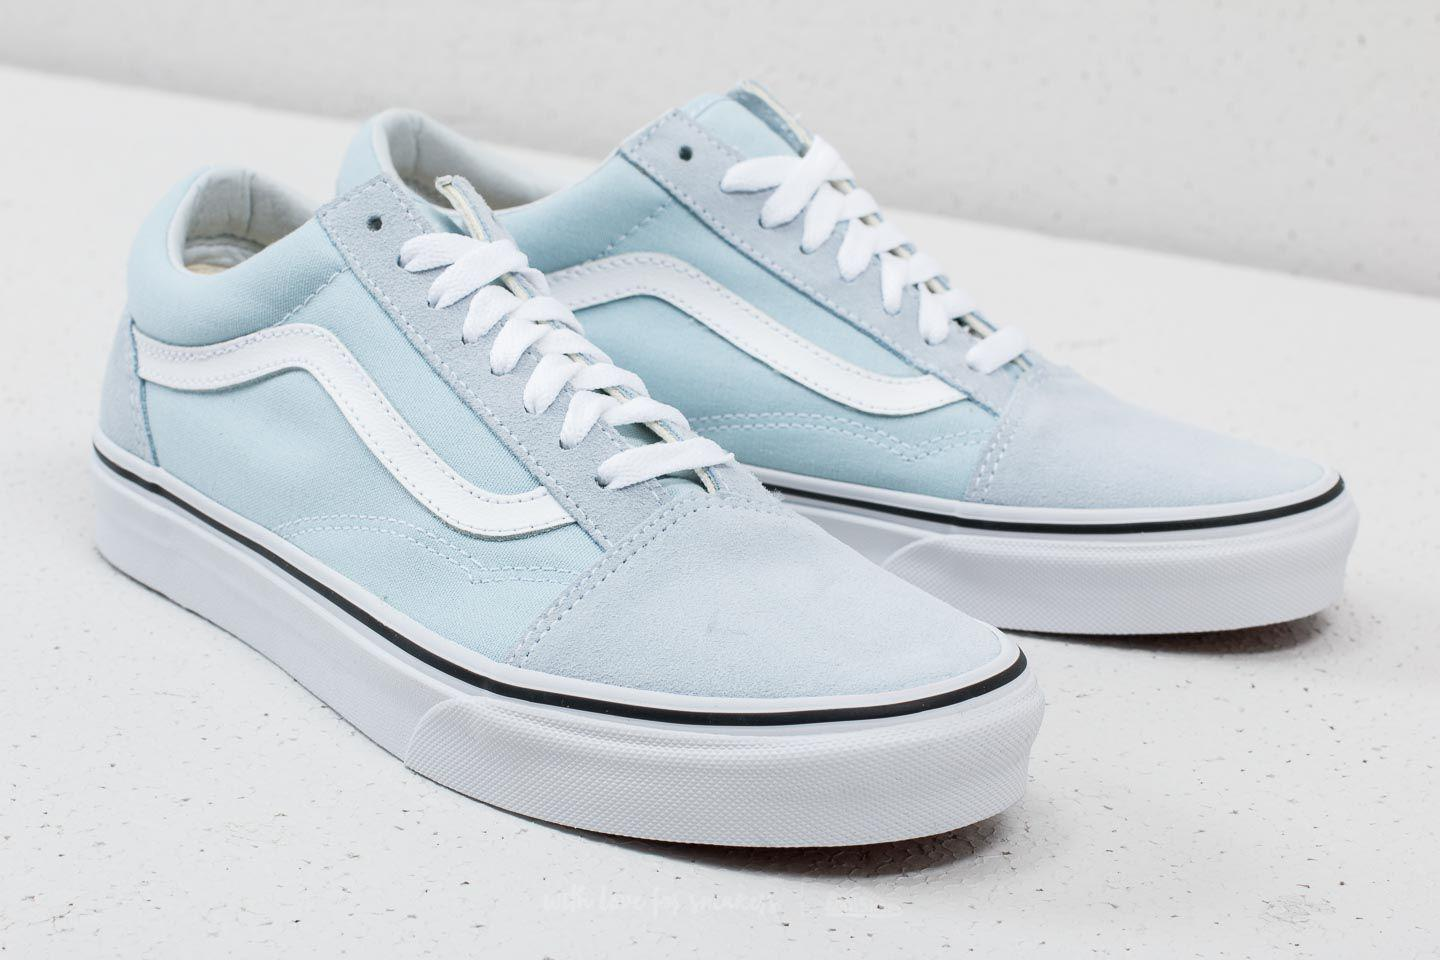 d4f7d9c390fdd5 Lyst - Vans Old Skool Baby Blue  True White